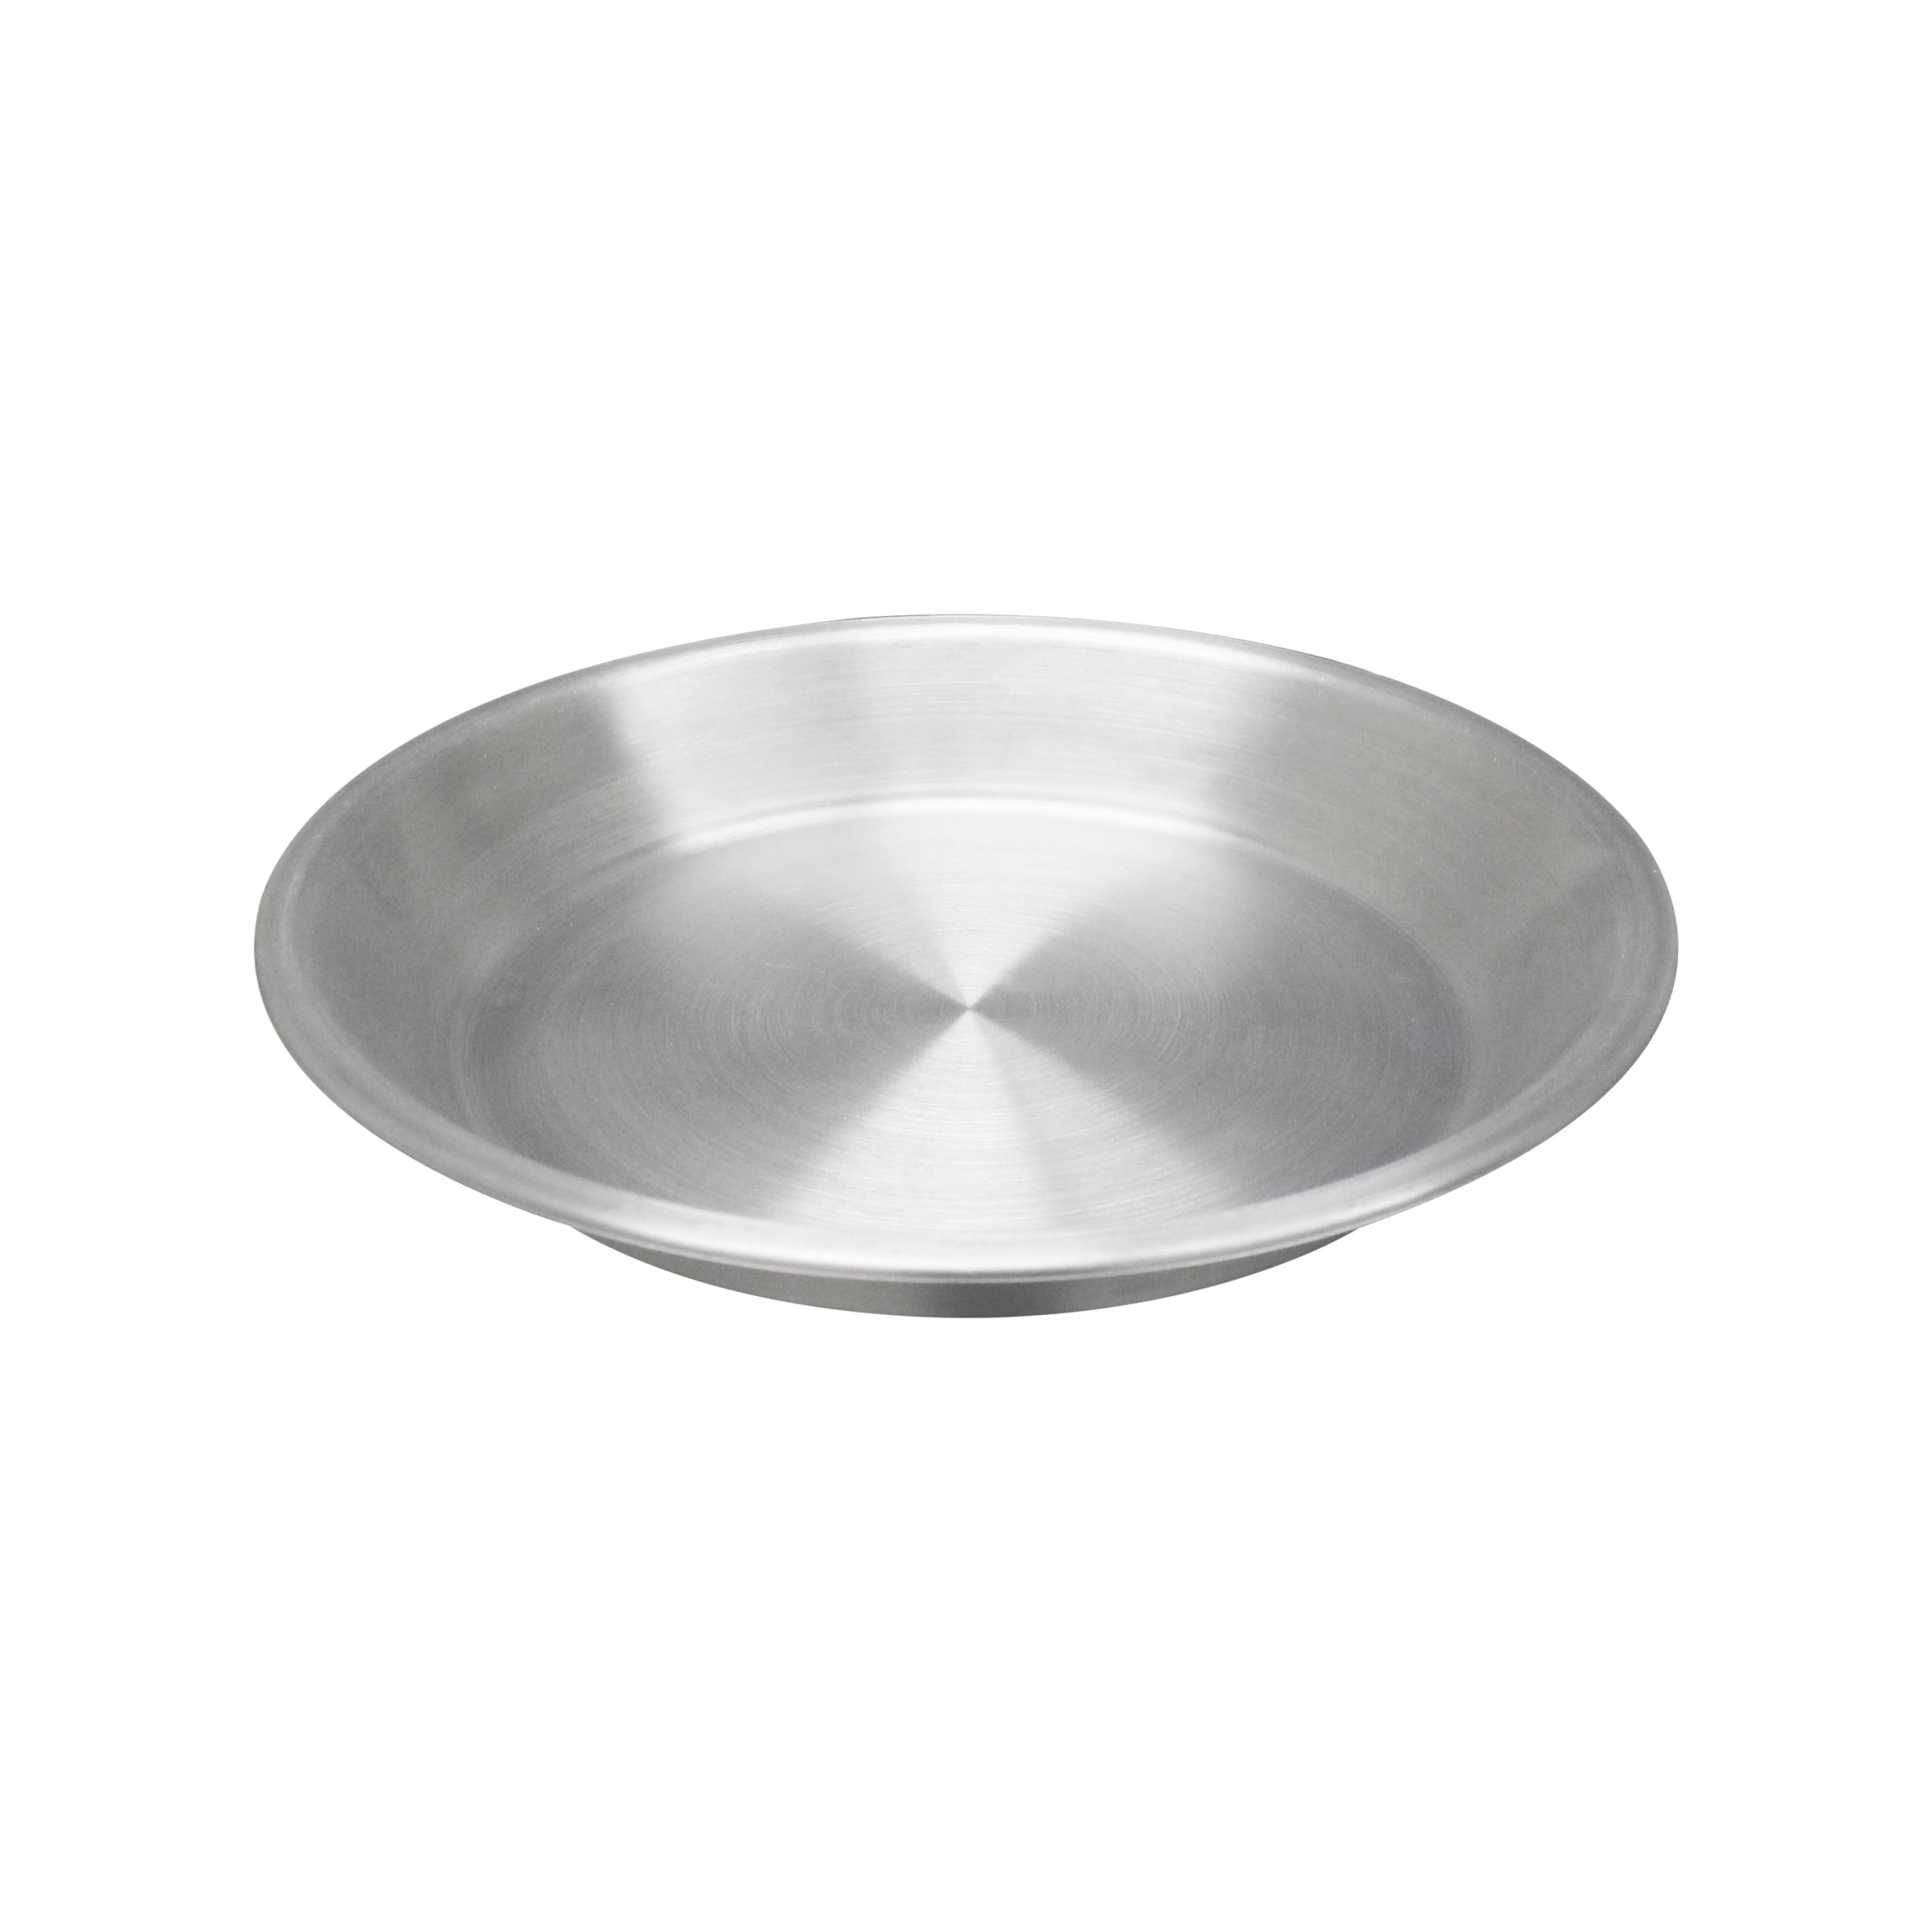 "11"" Pie Pan, Aluminum, 1.0 Mm, Comes In Each by Thunder Group"